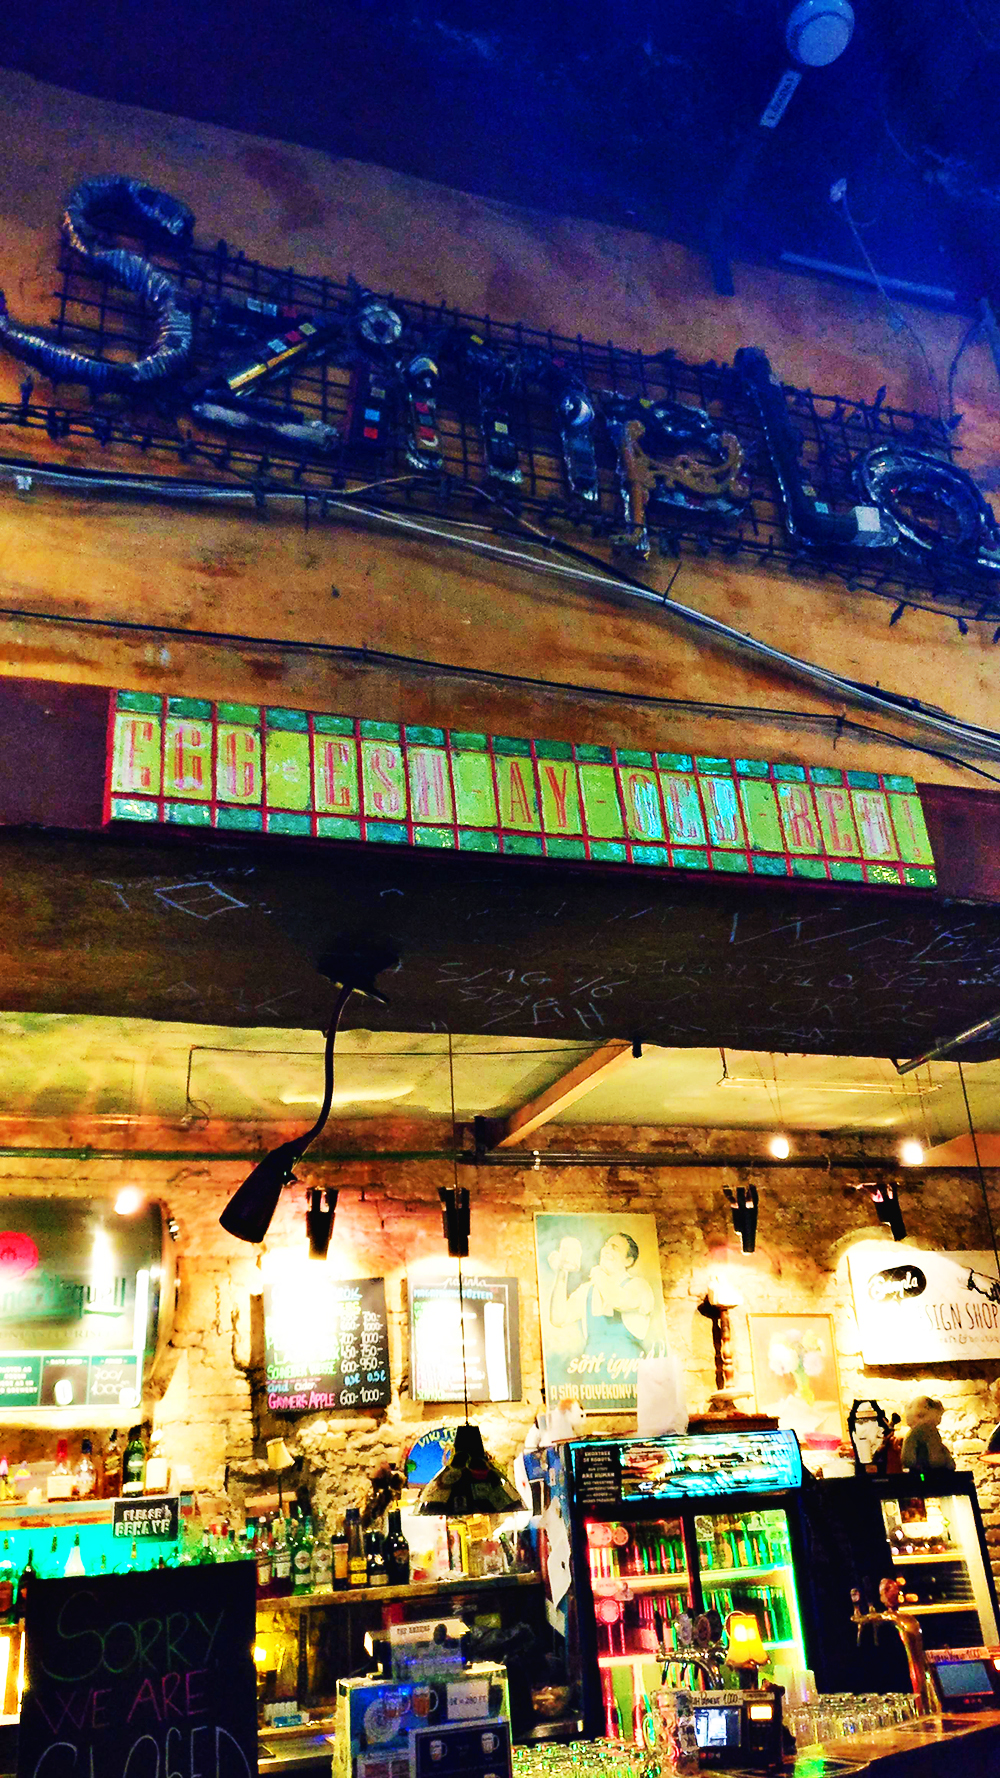 Learn a few Hungarian words - Egészségedre in Szimpla kert - 12 mistakes to avoid when visiting Budapest, Hungary | Aliz's Wonderland #Budapest #Budapestguide #Hungary